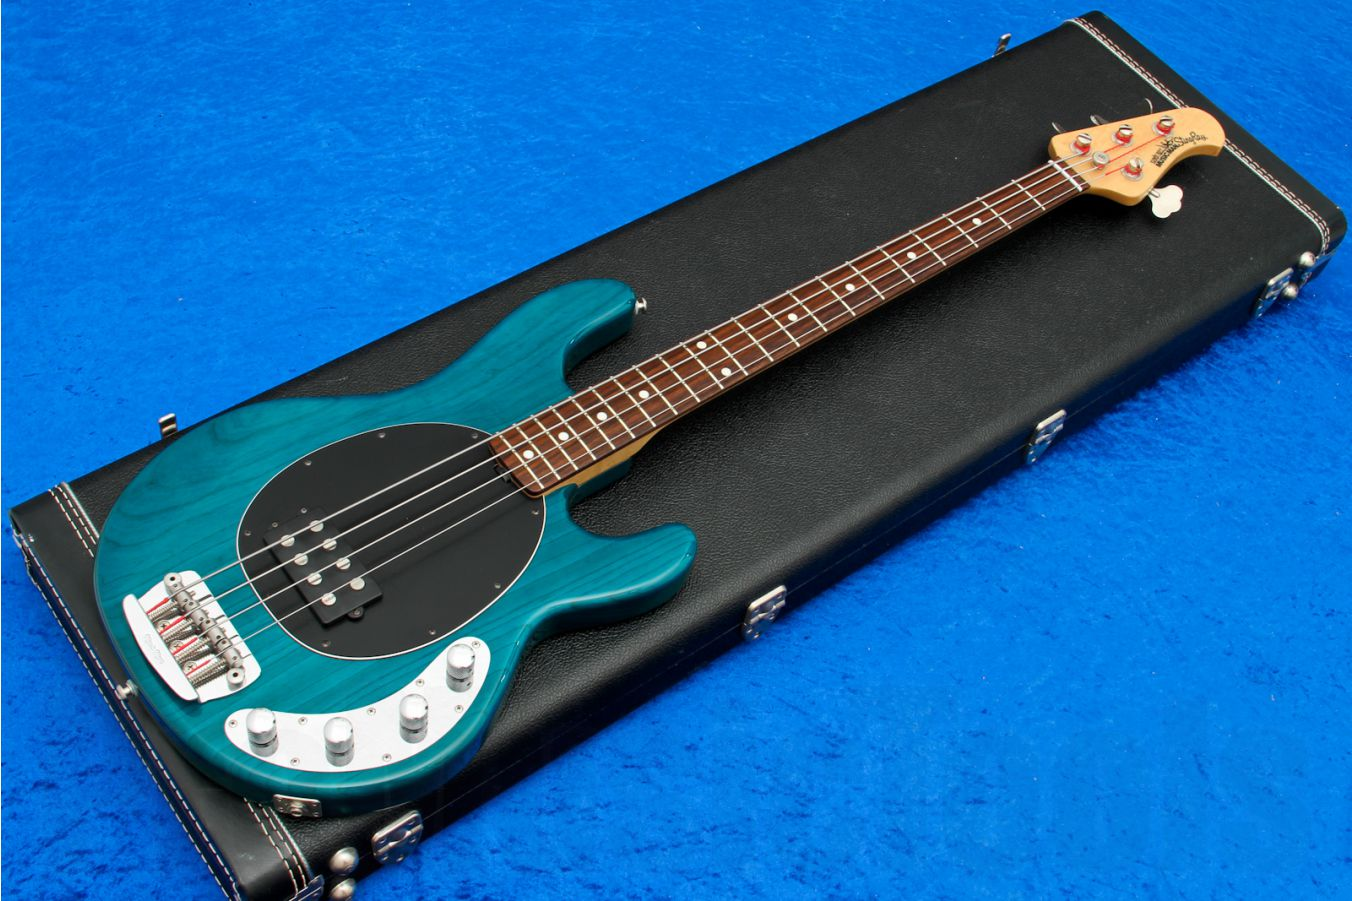 Music Man USA Stingray 4 TT - Translucent Teal RW BKPG